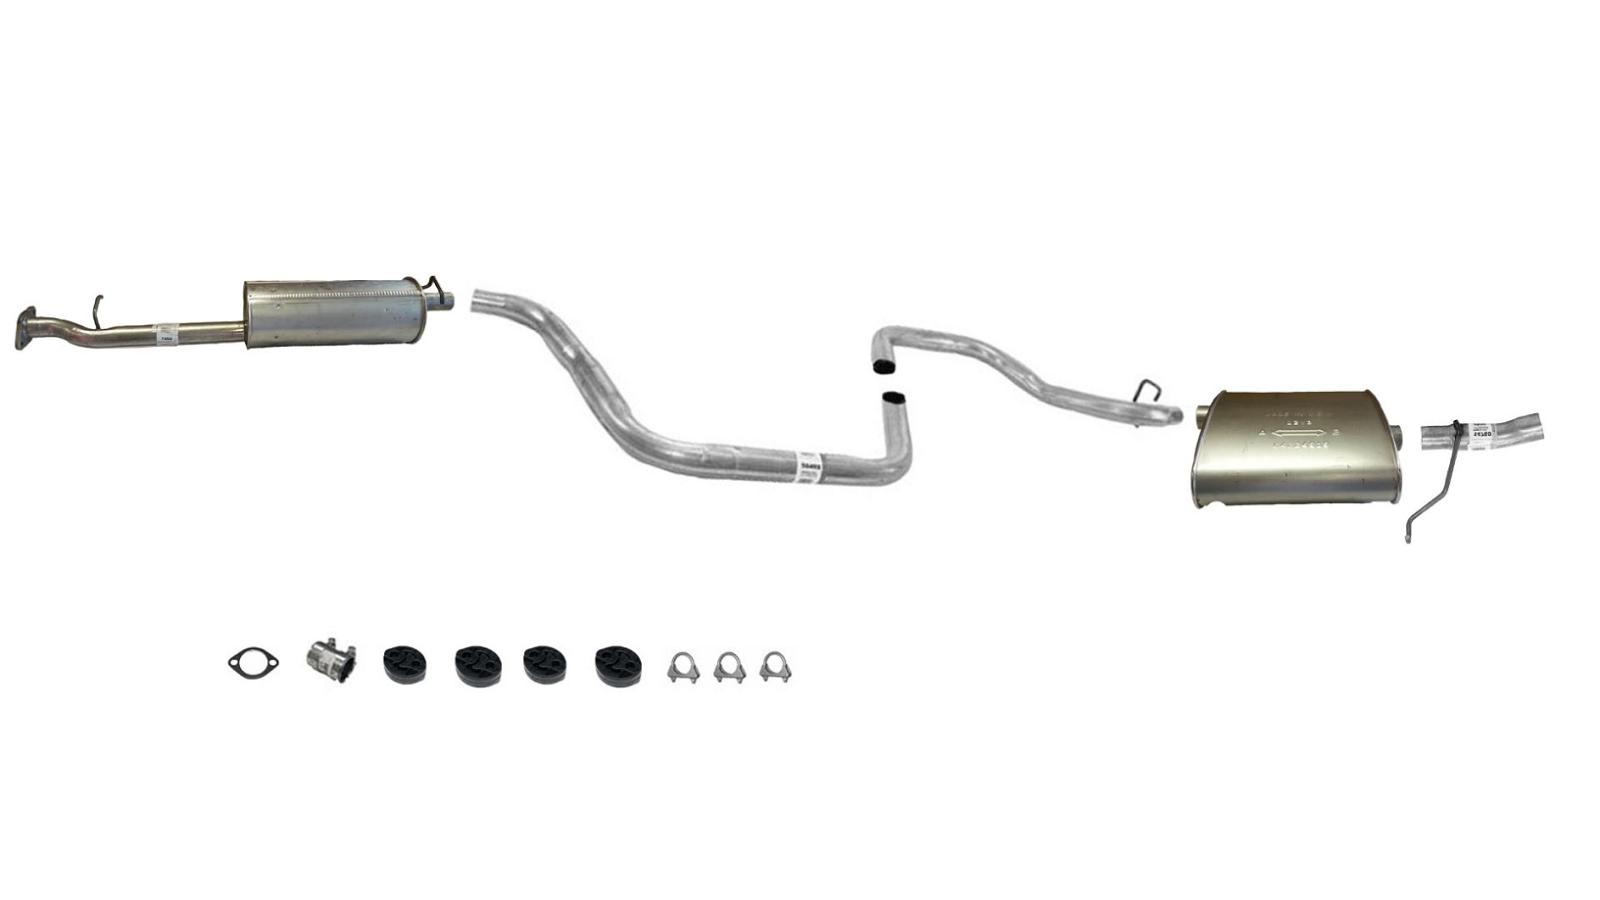 2001 chevy impala exhaust system diagram 1988 ez go golf cart wiring 2009 malibu camshaft position html autos post